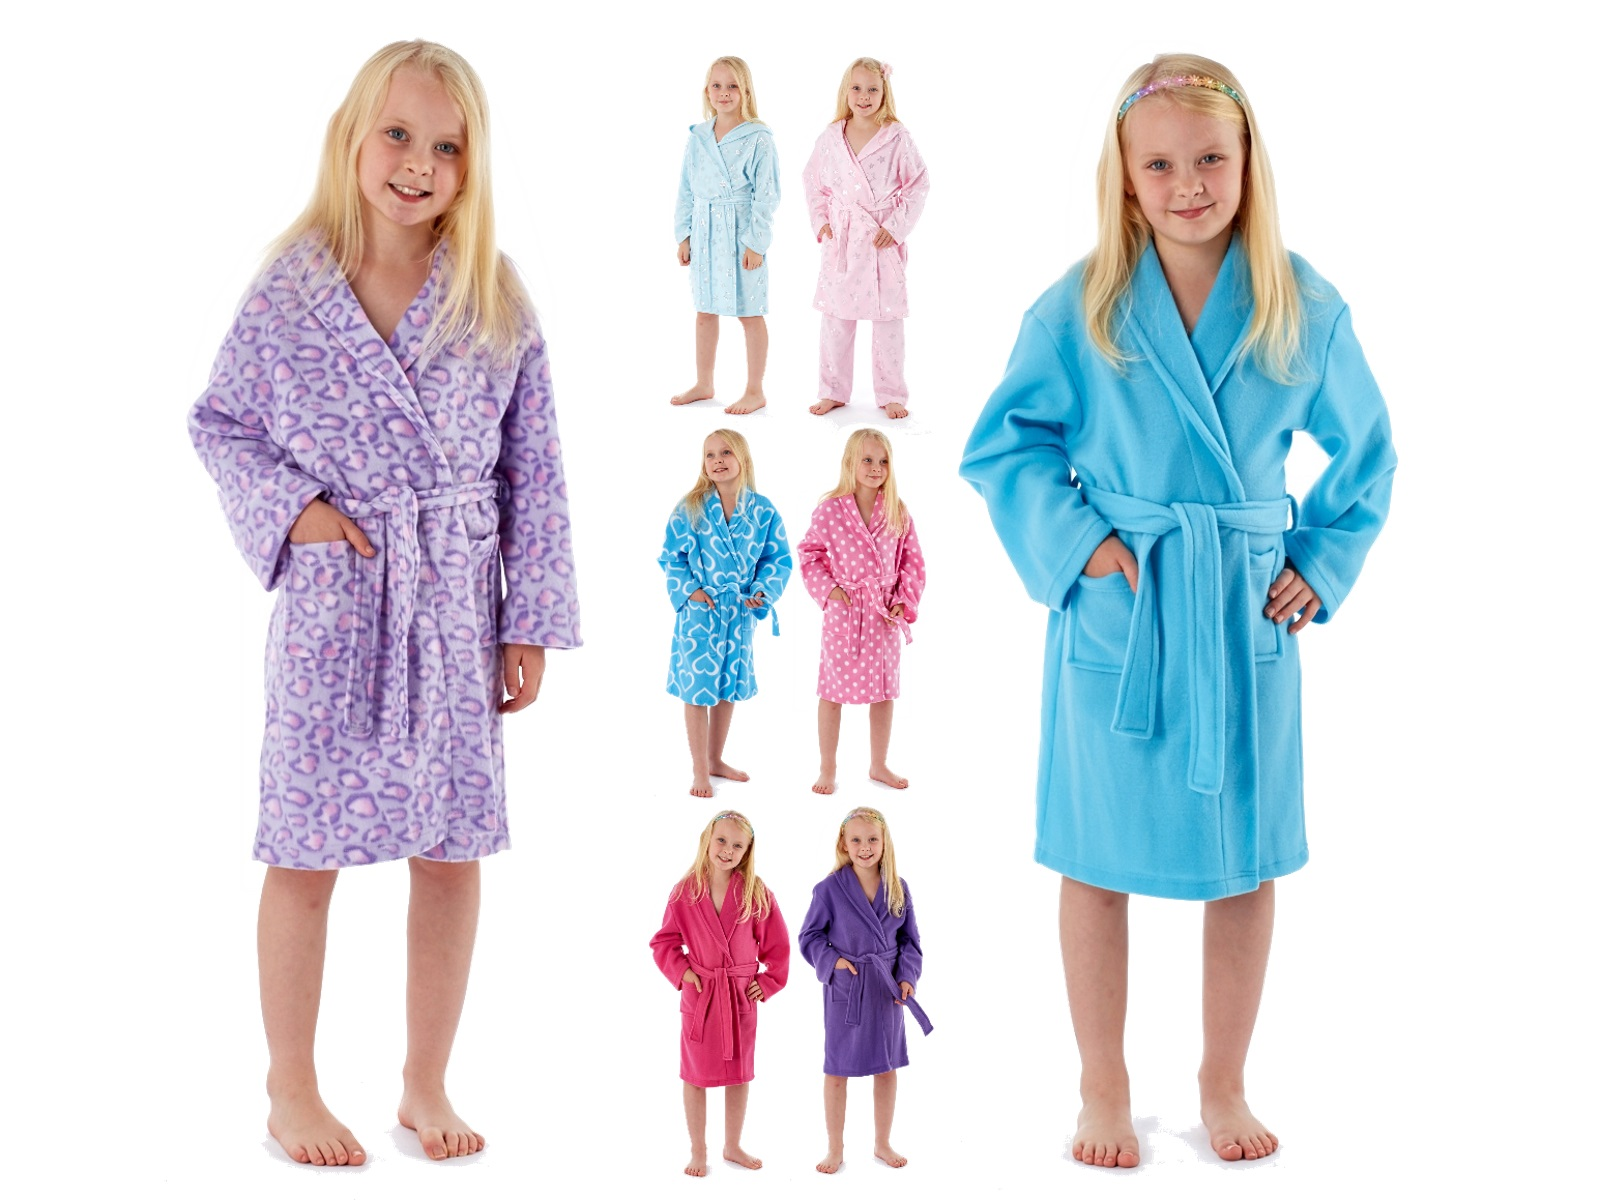 MyShoeStore Kids Boys Girls Bathrobe % Egyptian Cotton Luxury Velour Towelling Hooded Dressing Gown Soft Fine Comfortable Nightwear Terry Towel Bath Robe Lounge Wear Housecoat.